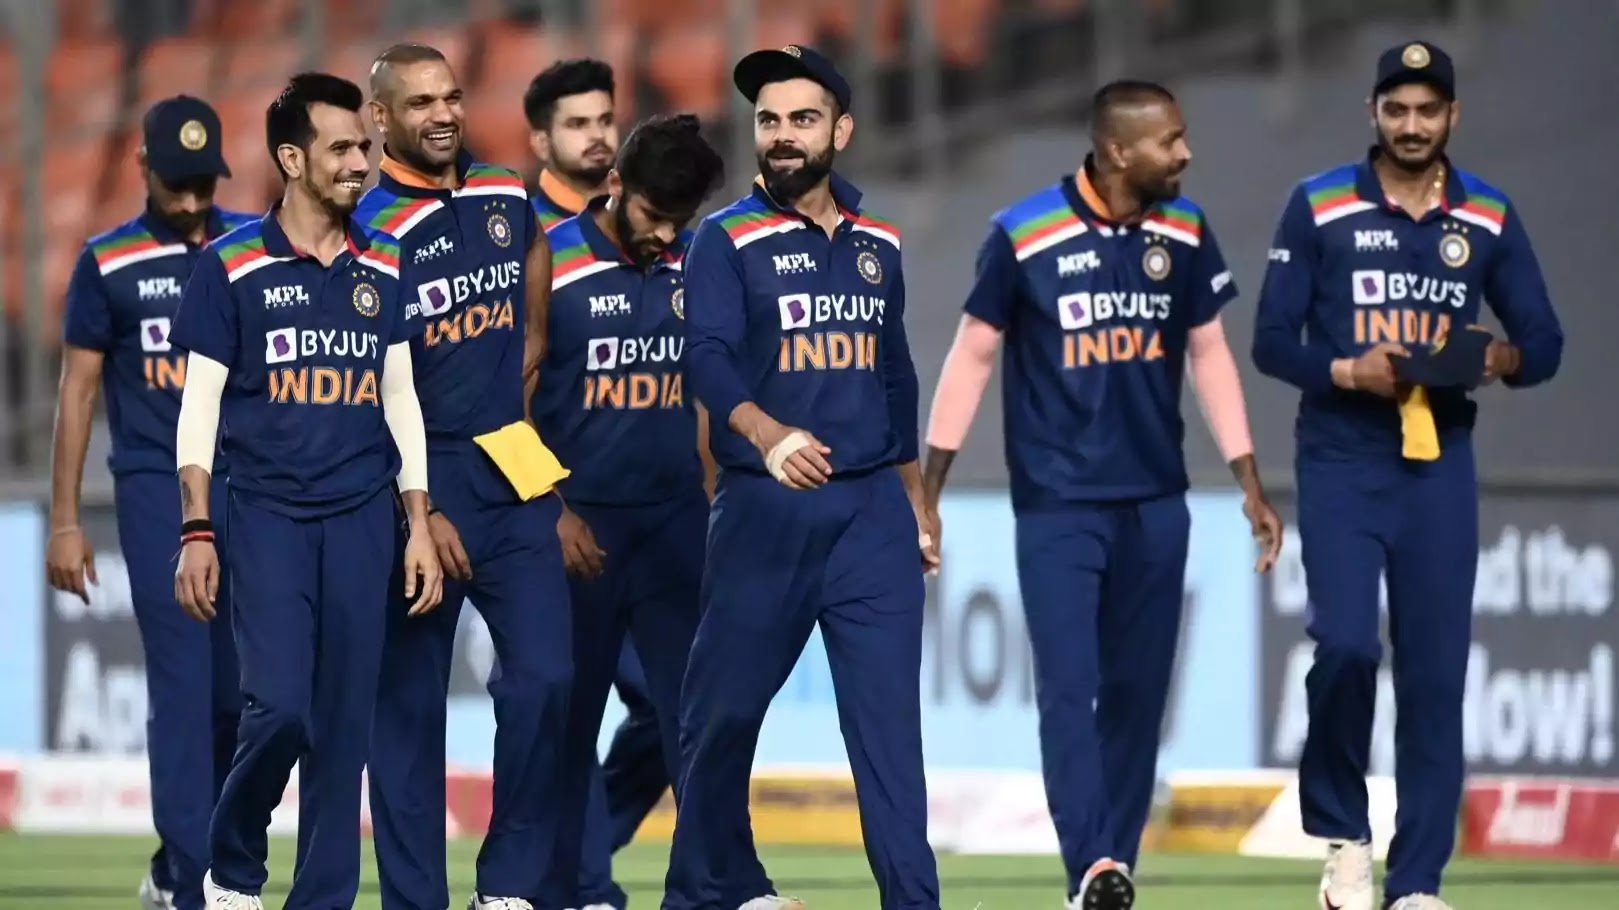 India17-member squad for Sri Lanka tour, This may be the opening pair The Indian team for India's tour of Sri Lanka: